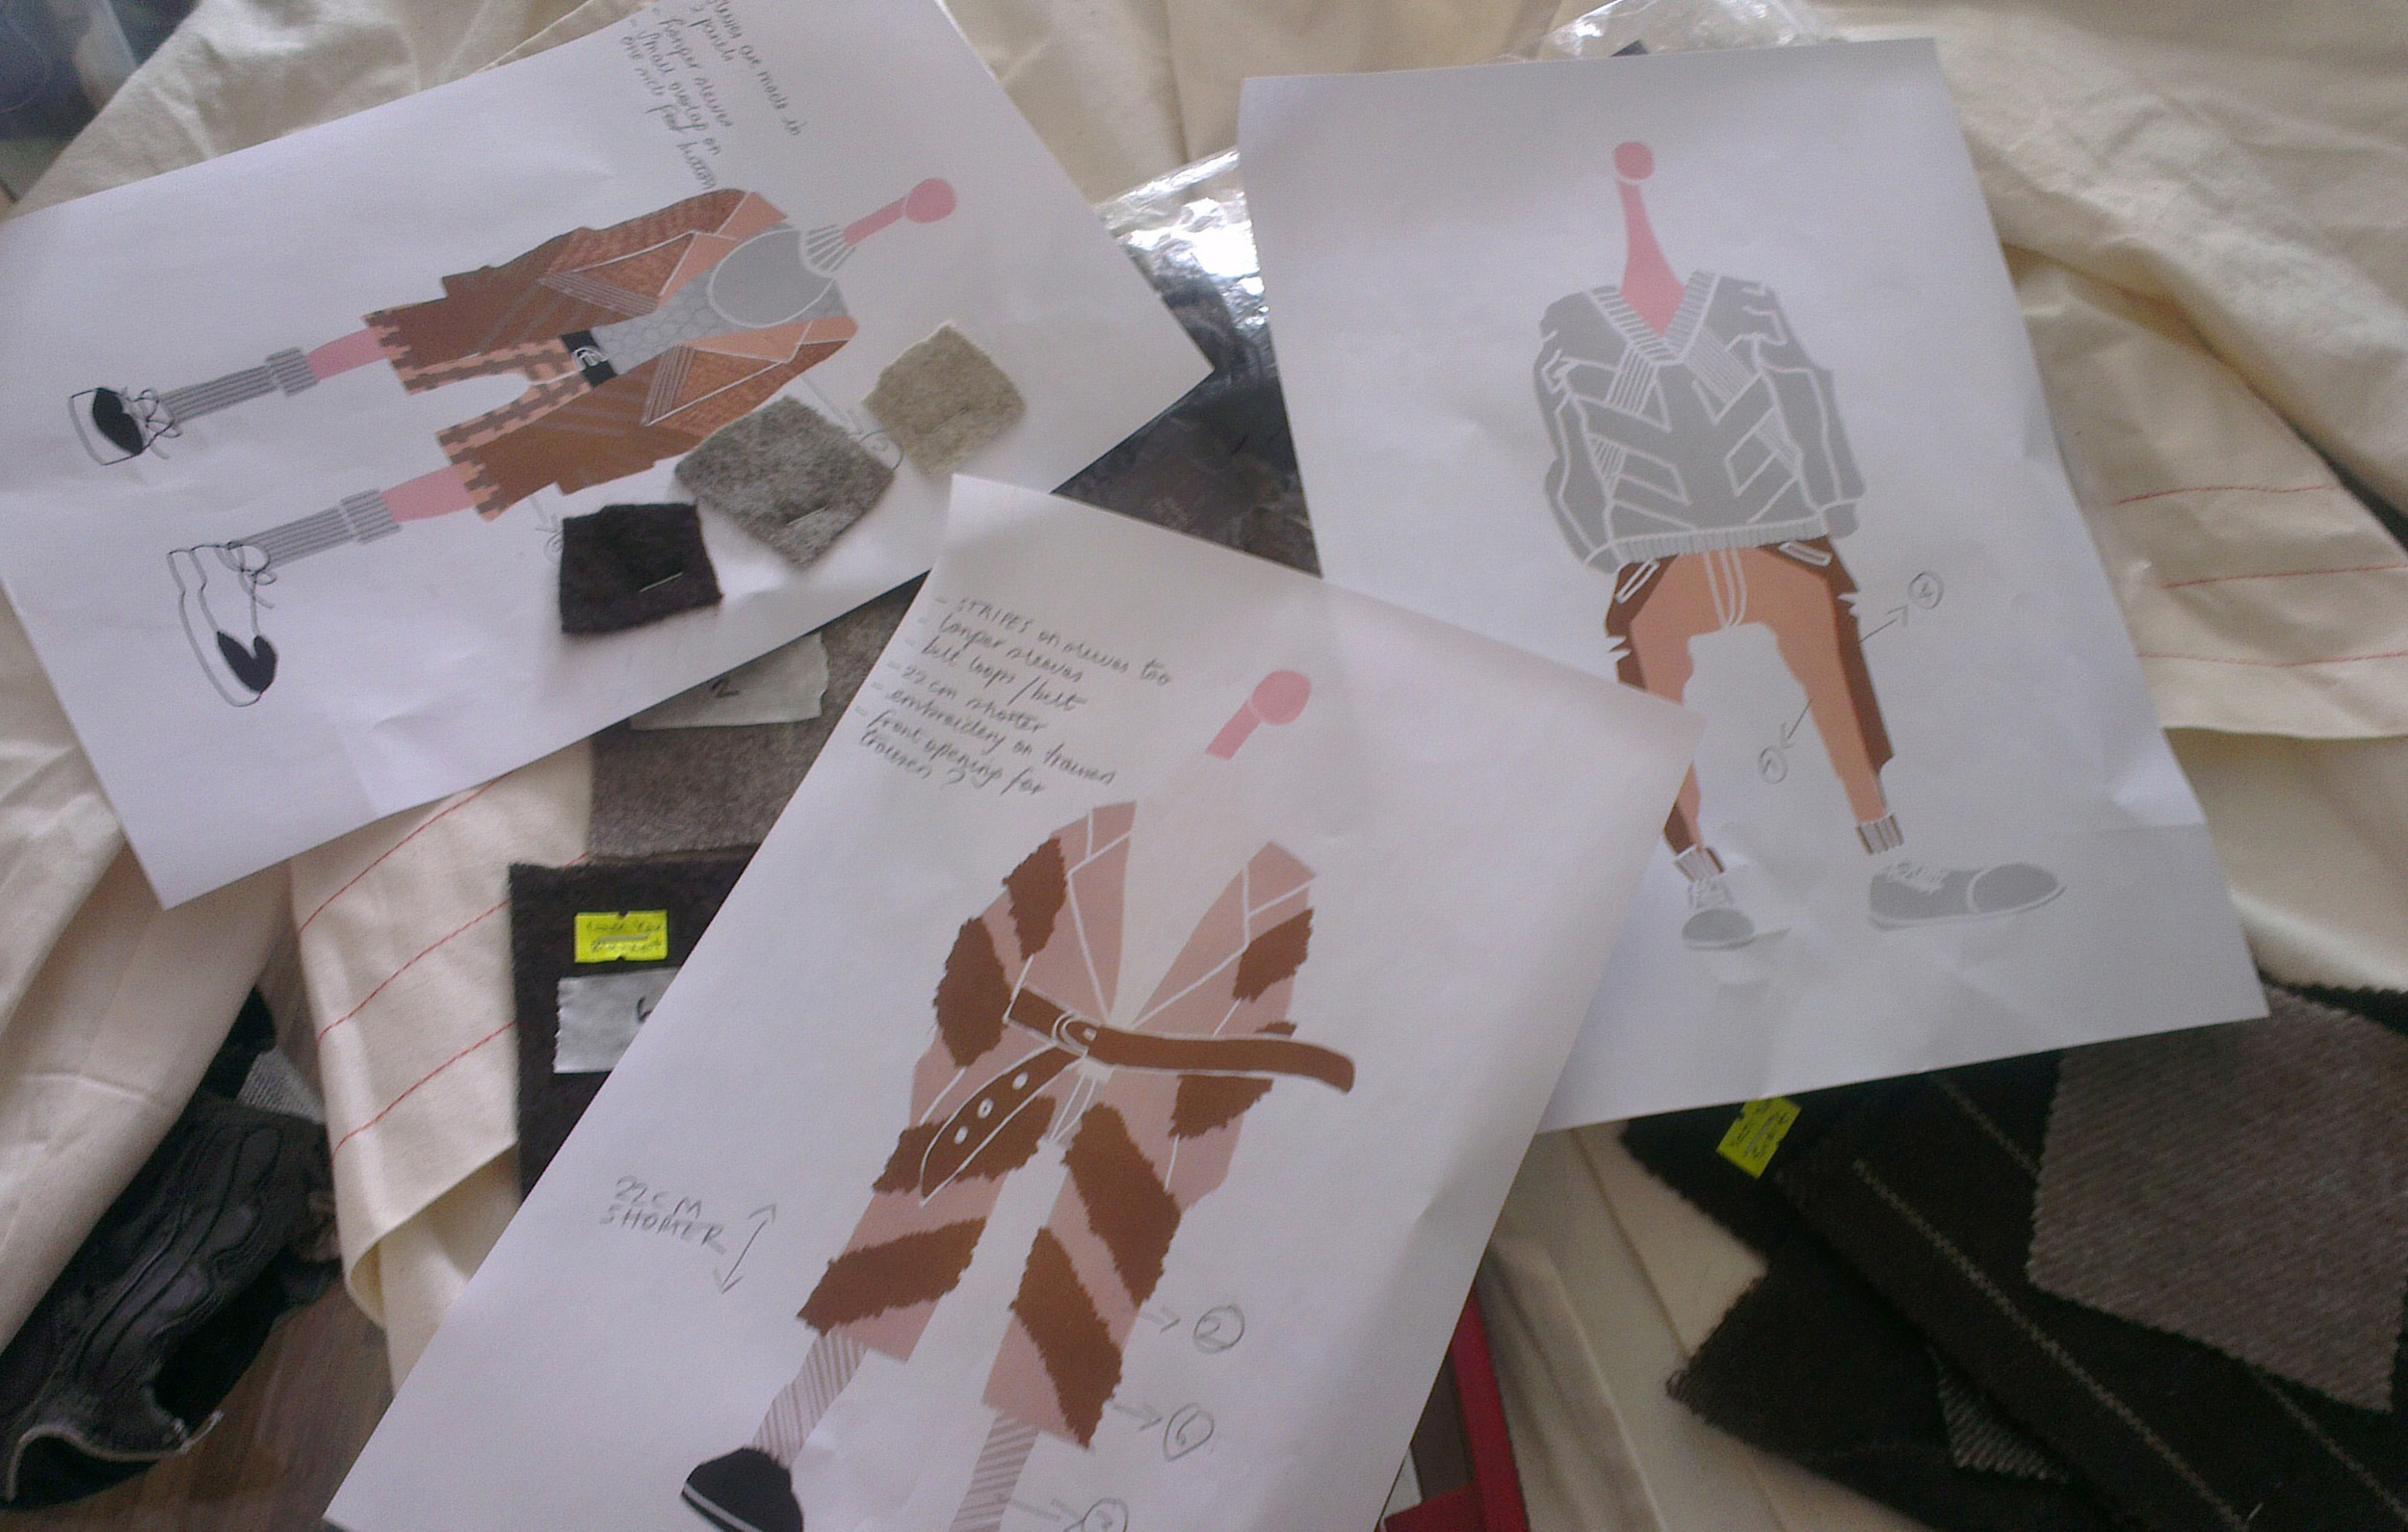 Carlo's sketches for Tengri's debut collection